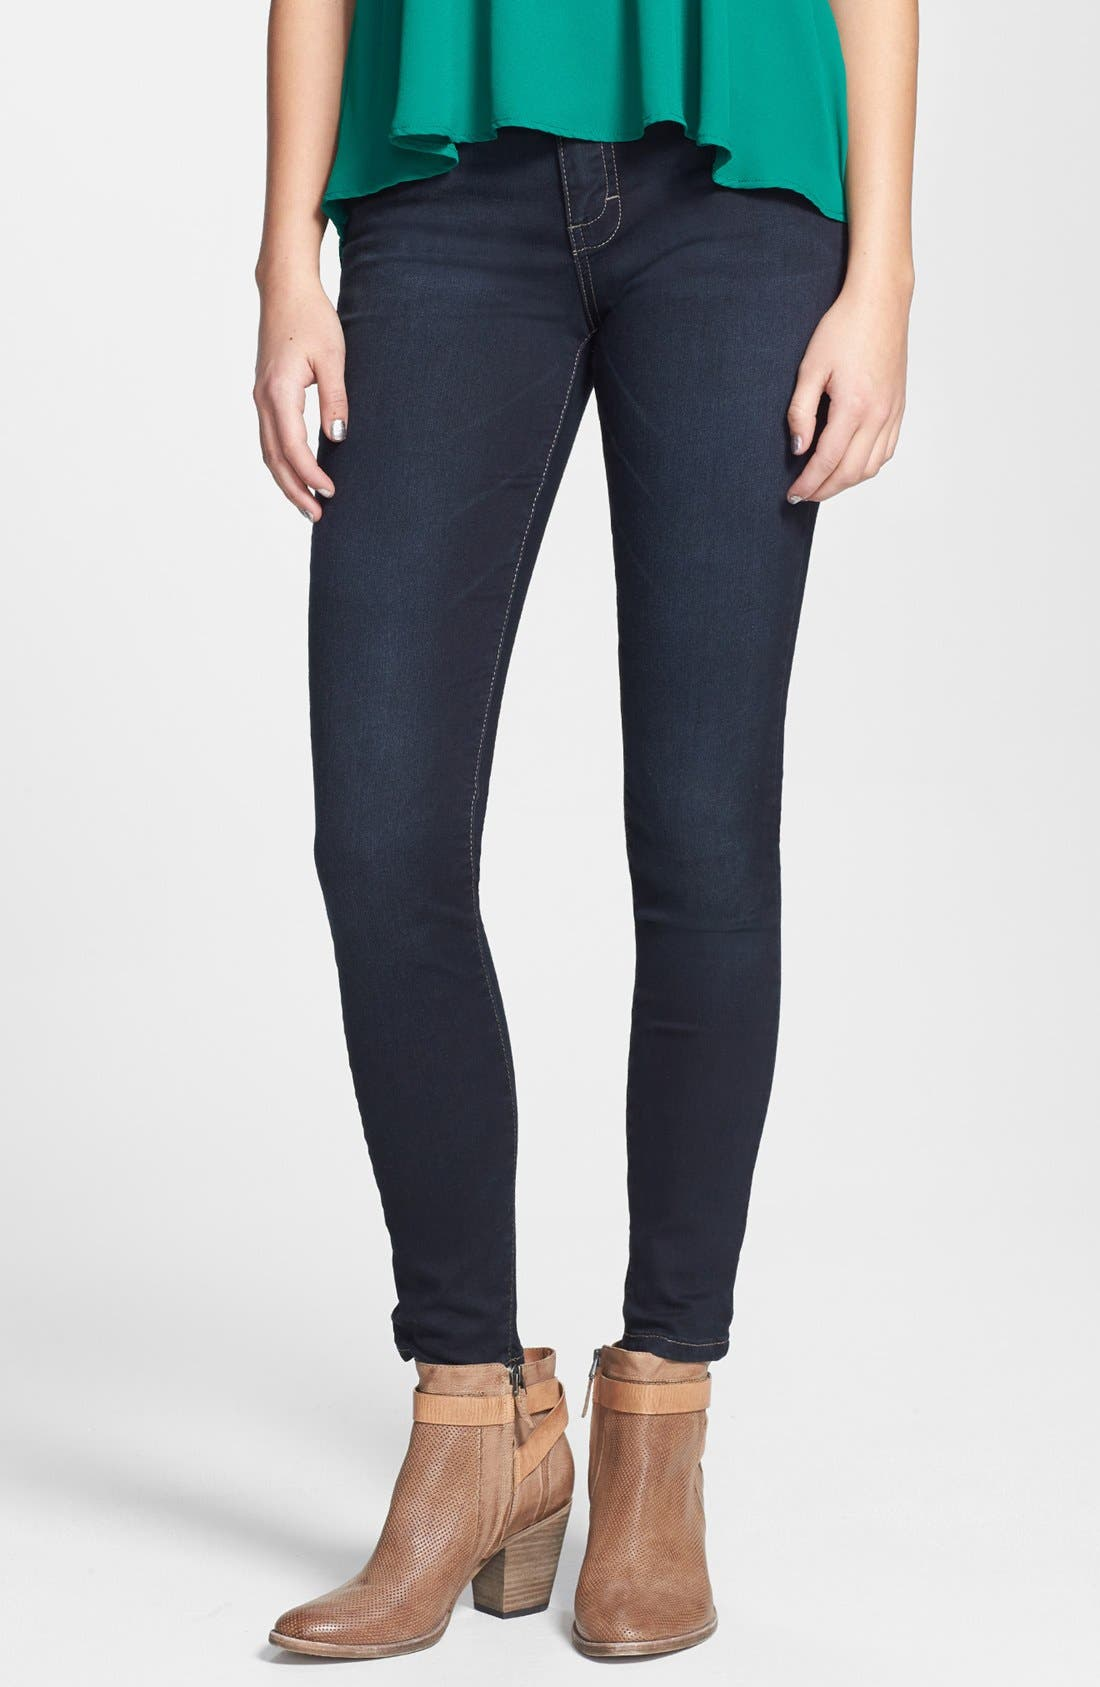 Alternate Image 1 Selected - STS Blue High Waist Skinny Jeans (Dark) (Juniors)